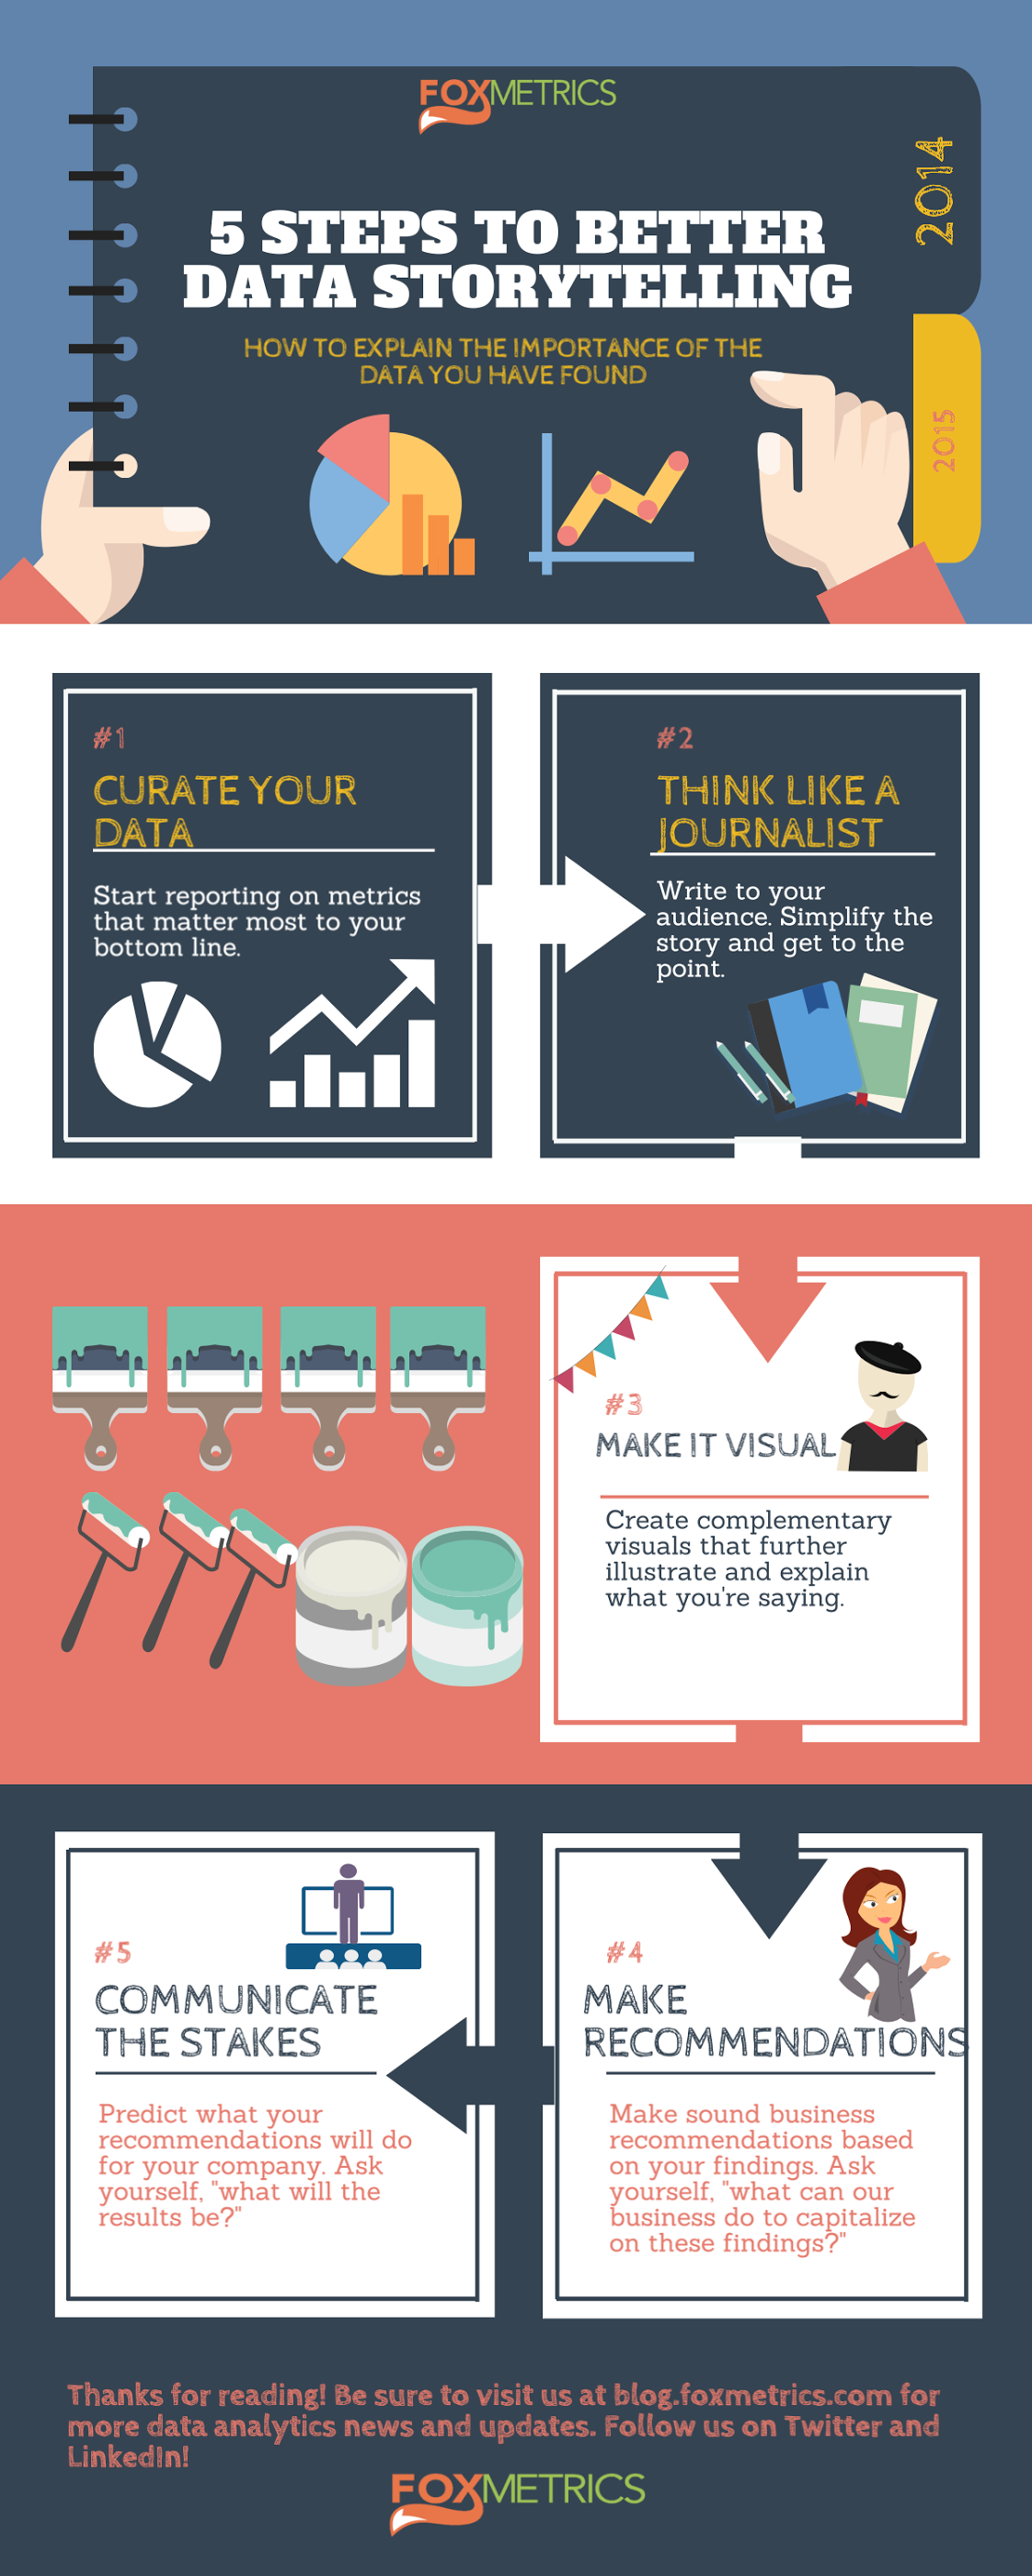 Want to become a better data storyteller?